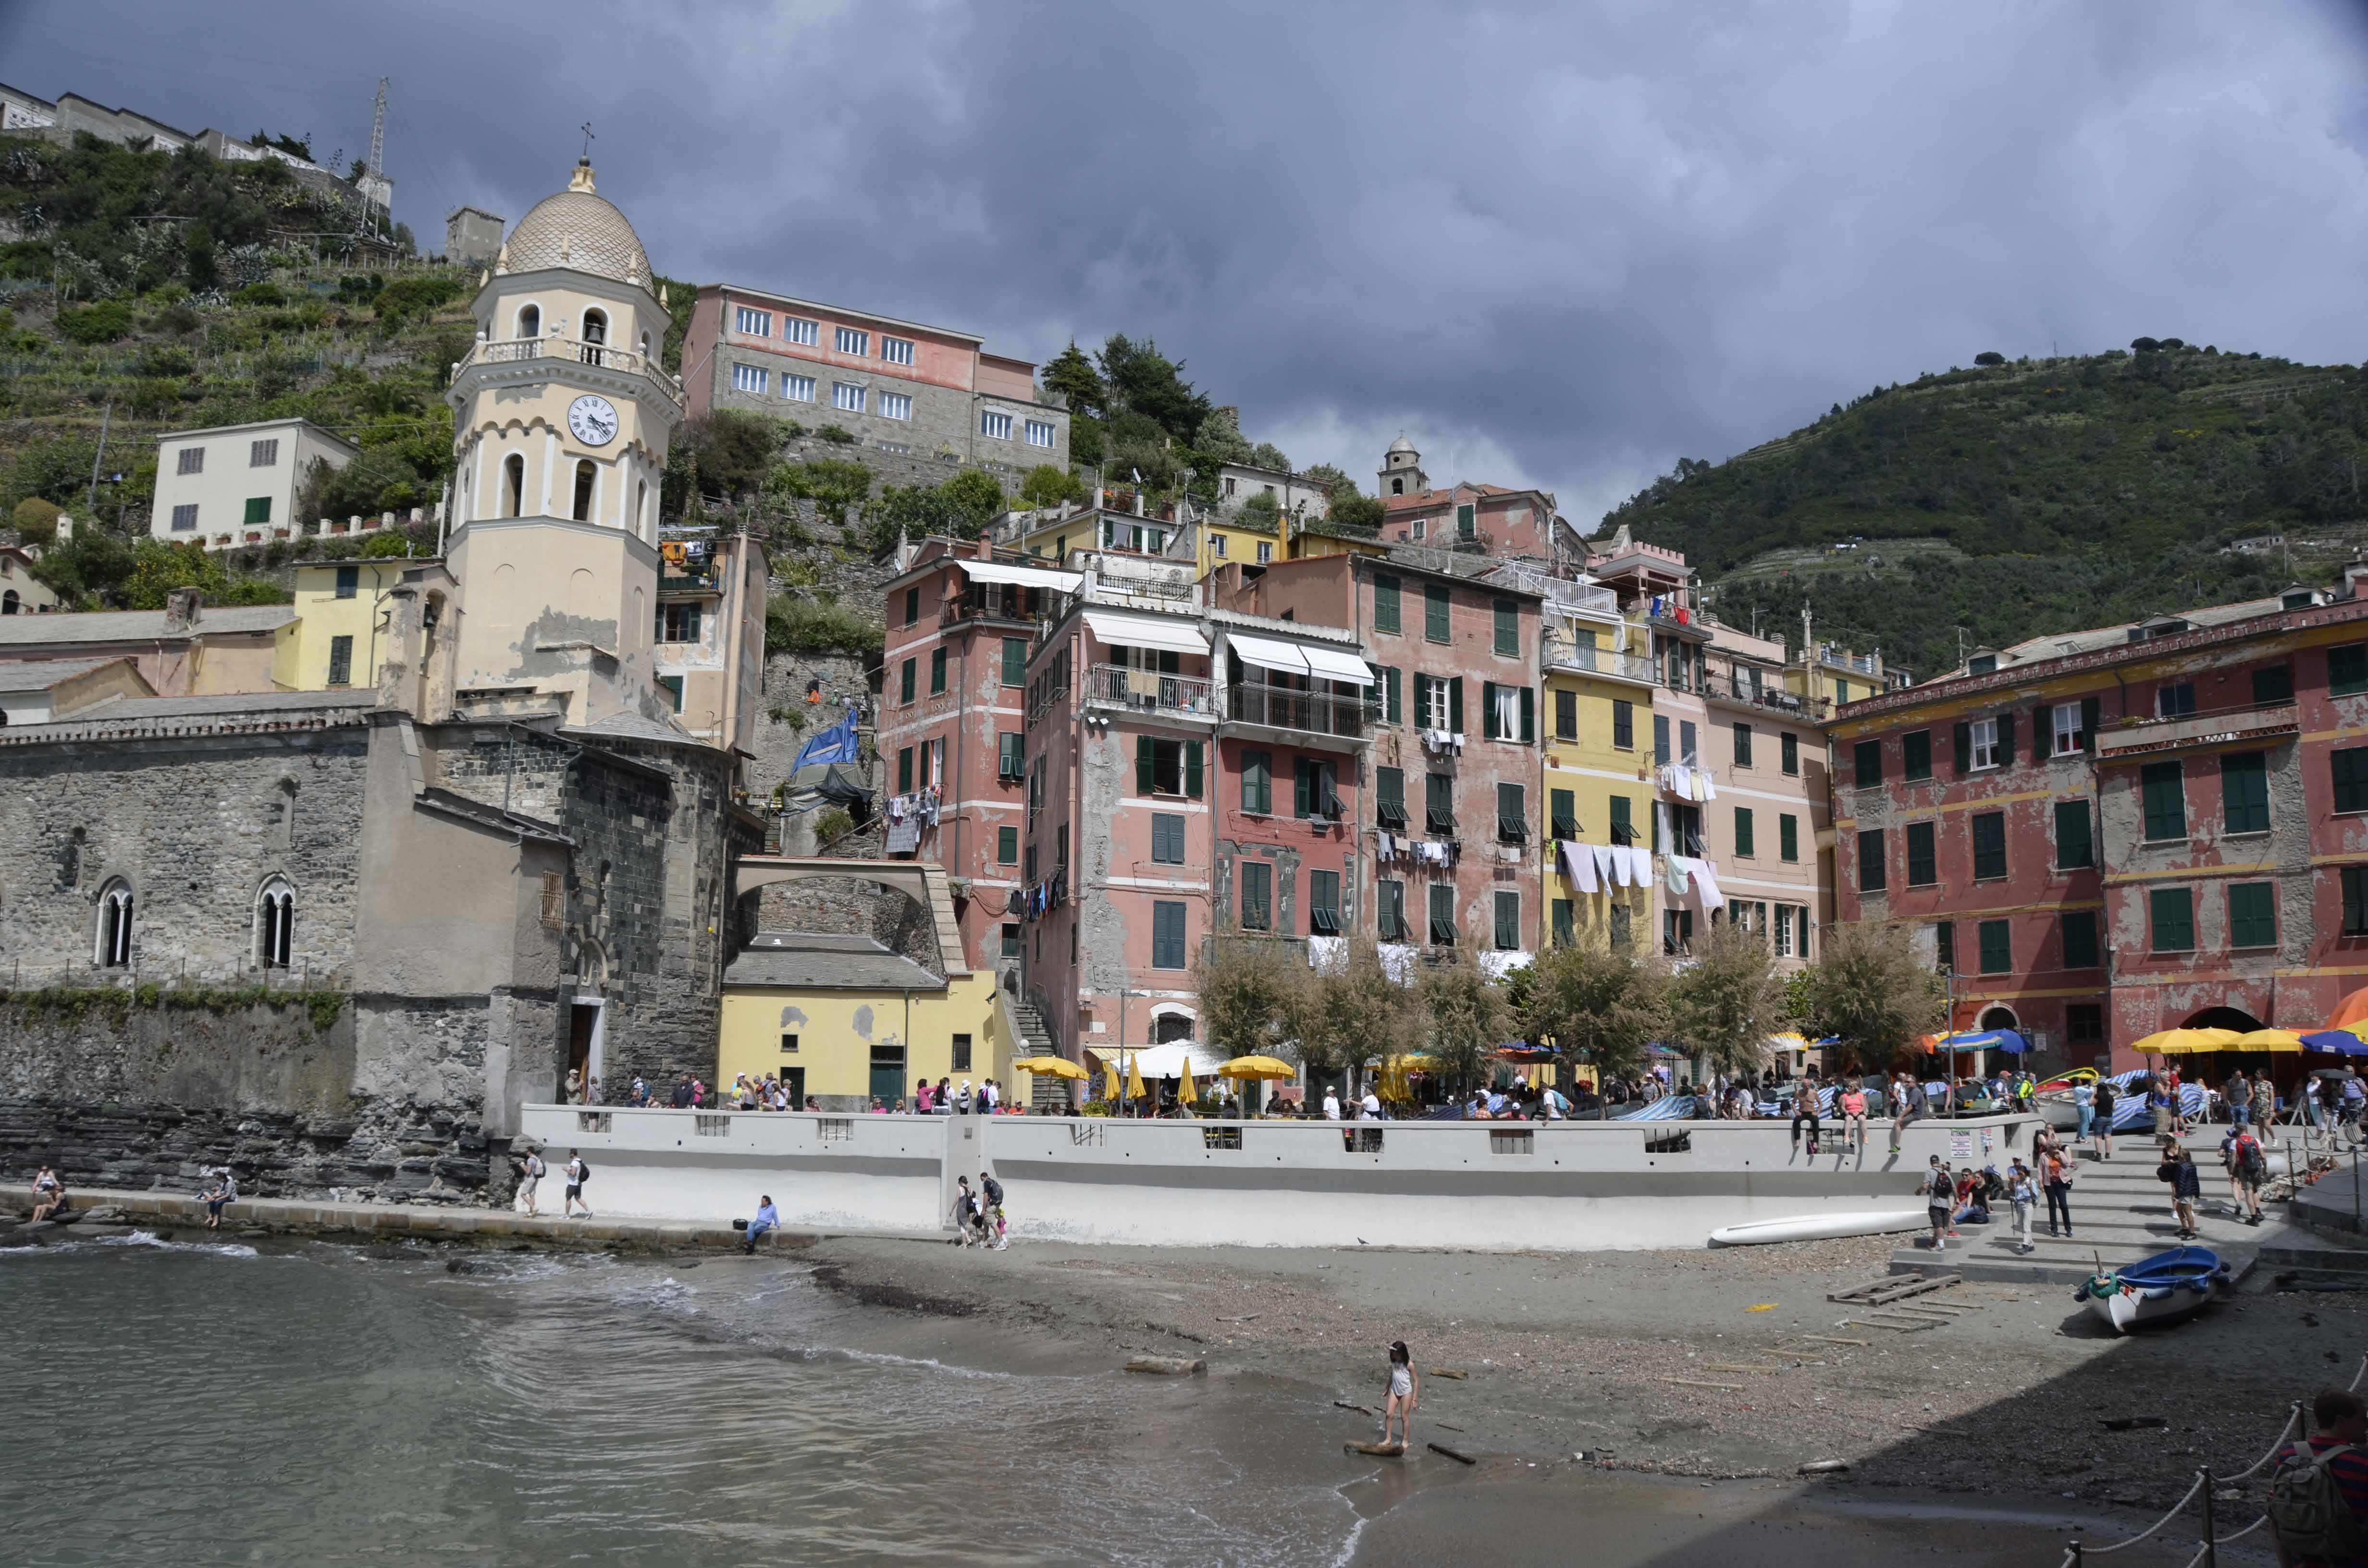 Vernazza may be fairest of them all.